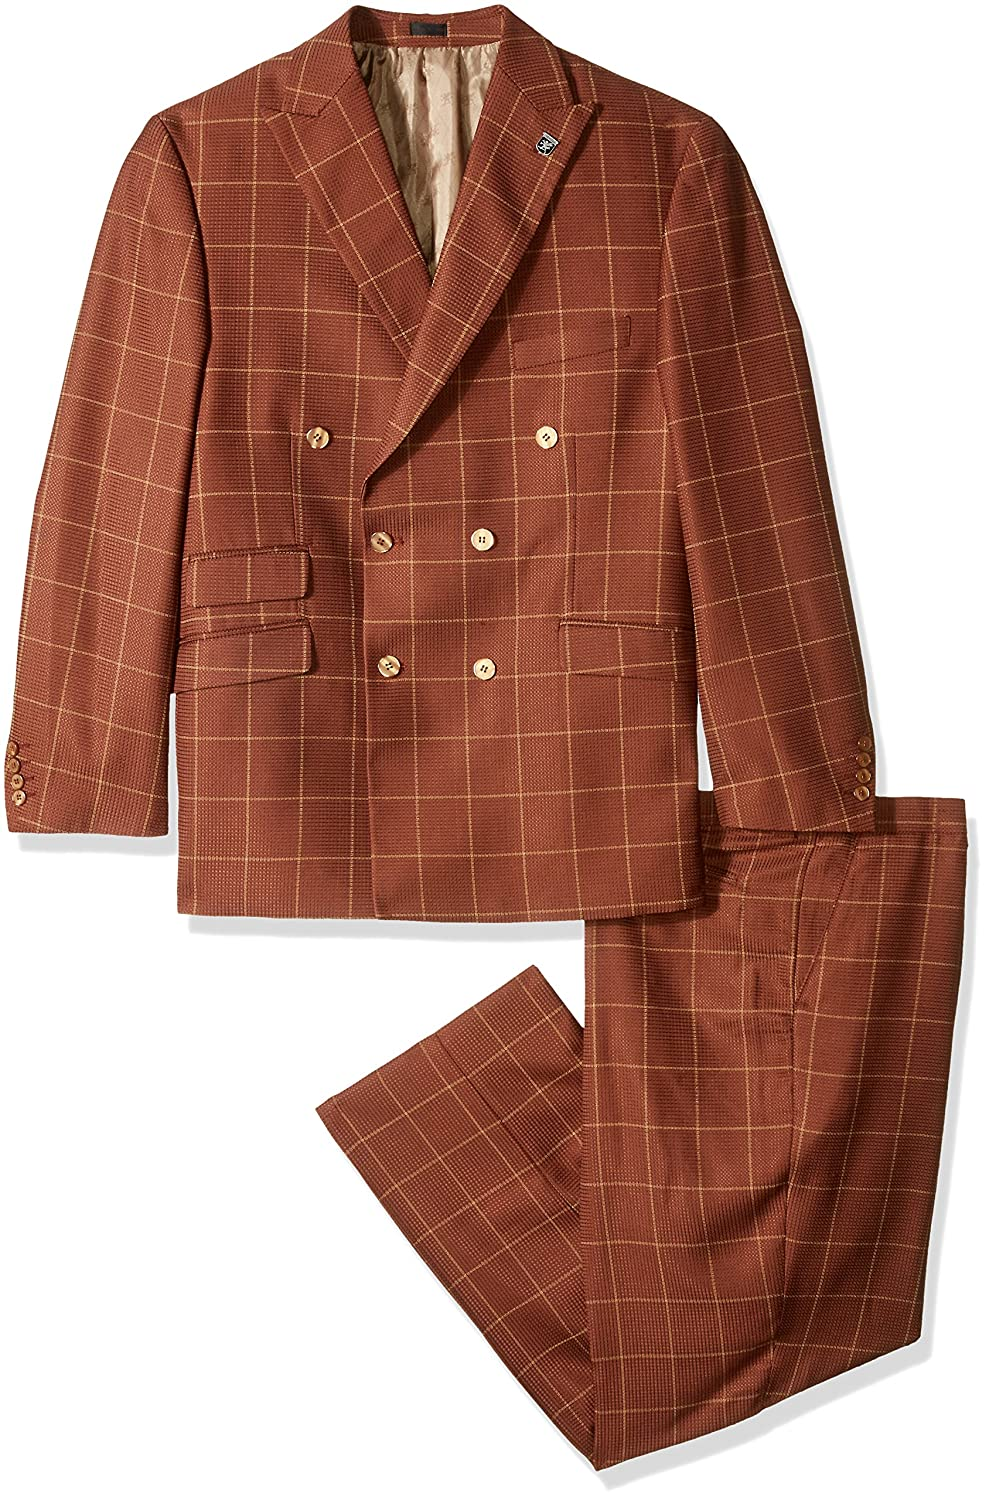 1940s Mens Suits | Gangster, Mobster, Zoot Suits  Big & Tall Double Breasted Suit Mini Check STACY ADAMS Mens Tall Sam $166.98 AT vintagedancer.com